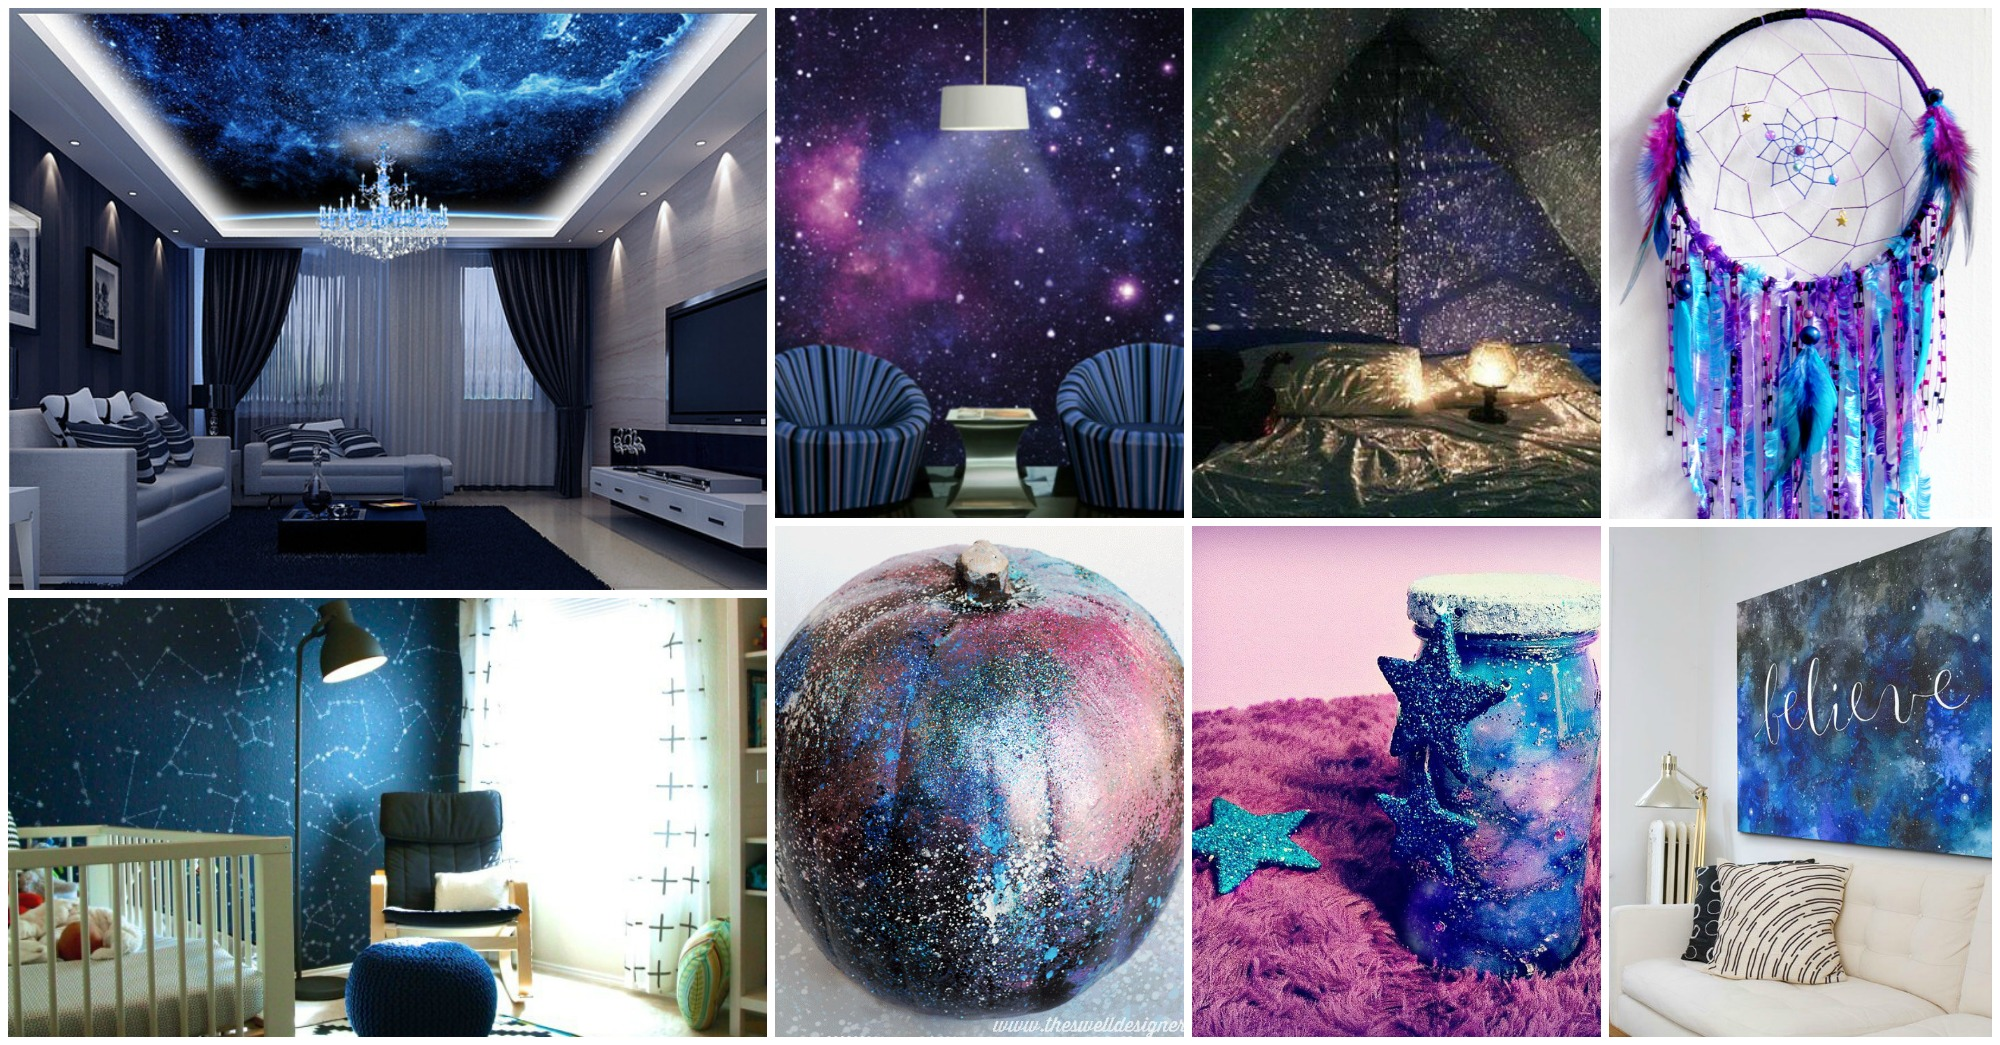 20 Wonderful Galaxy Decor Ideas That Will Bring Magic Into Your Home